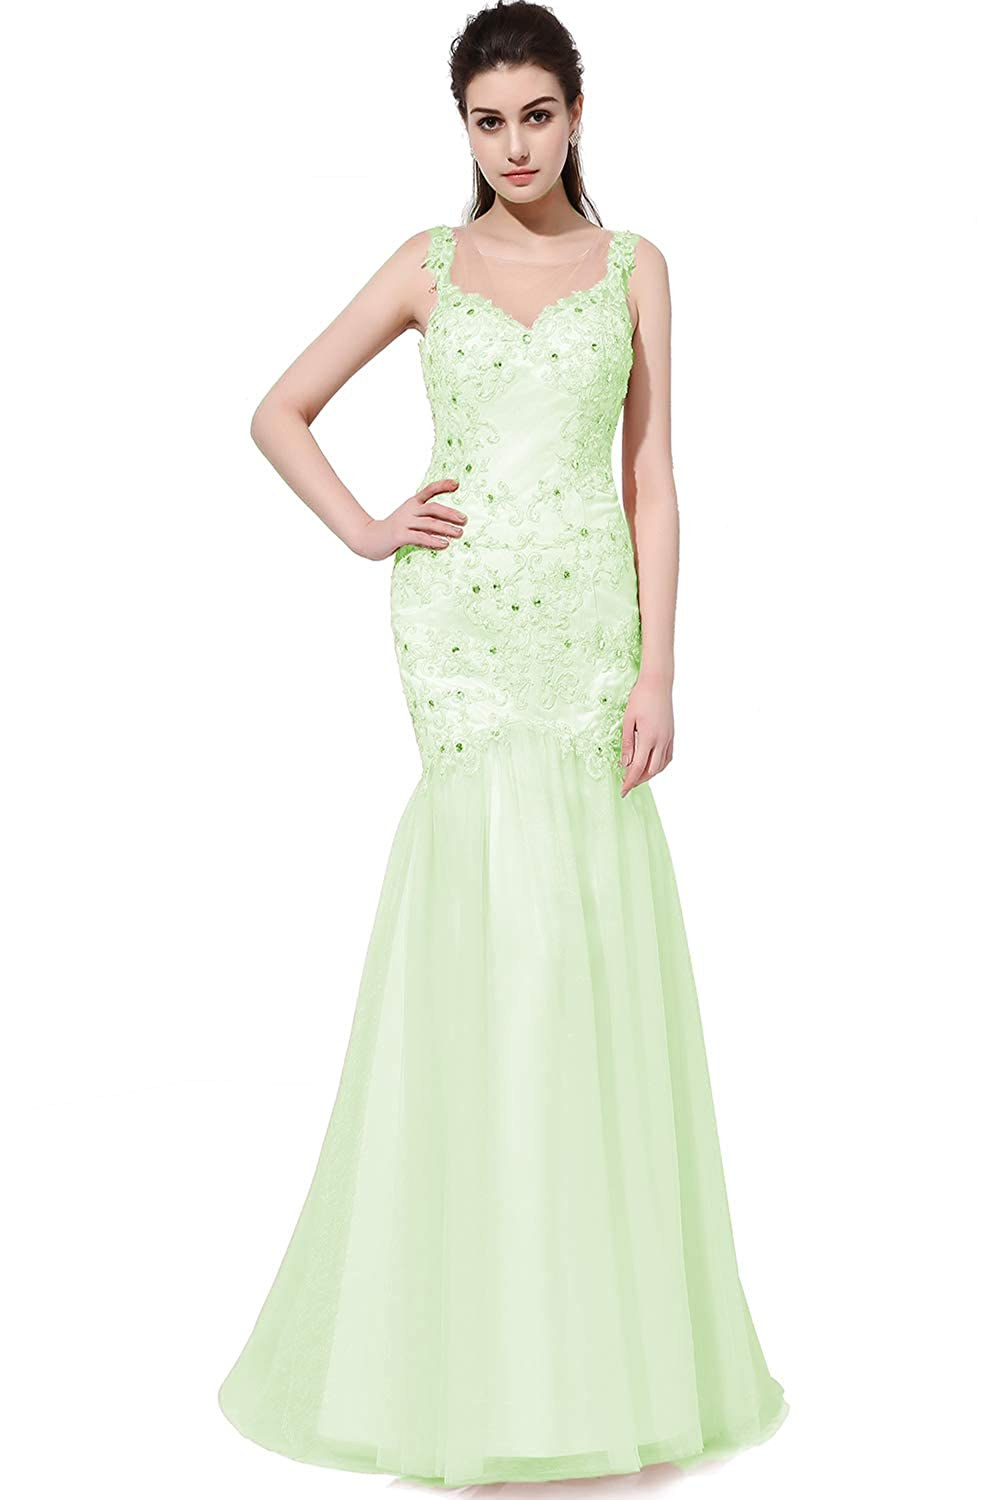 Mint Green SDRESS Women's Rhinestones Lace Appliques Sleeveless Crewneck Mermaid Prom Dress